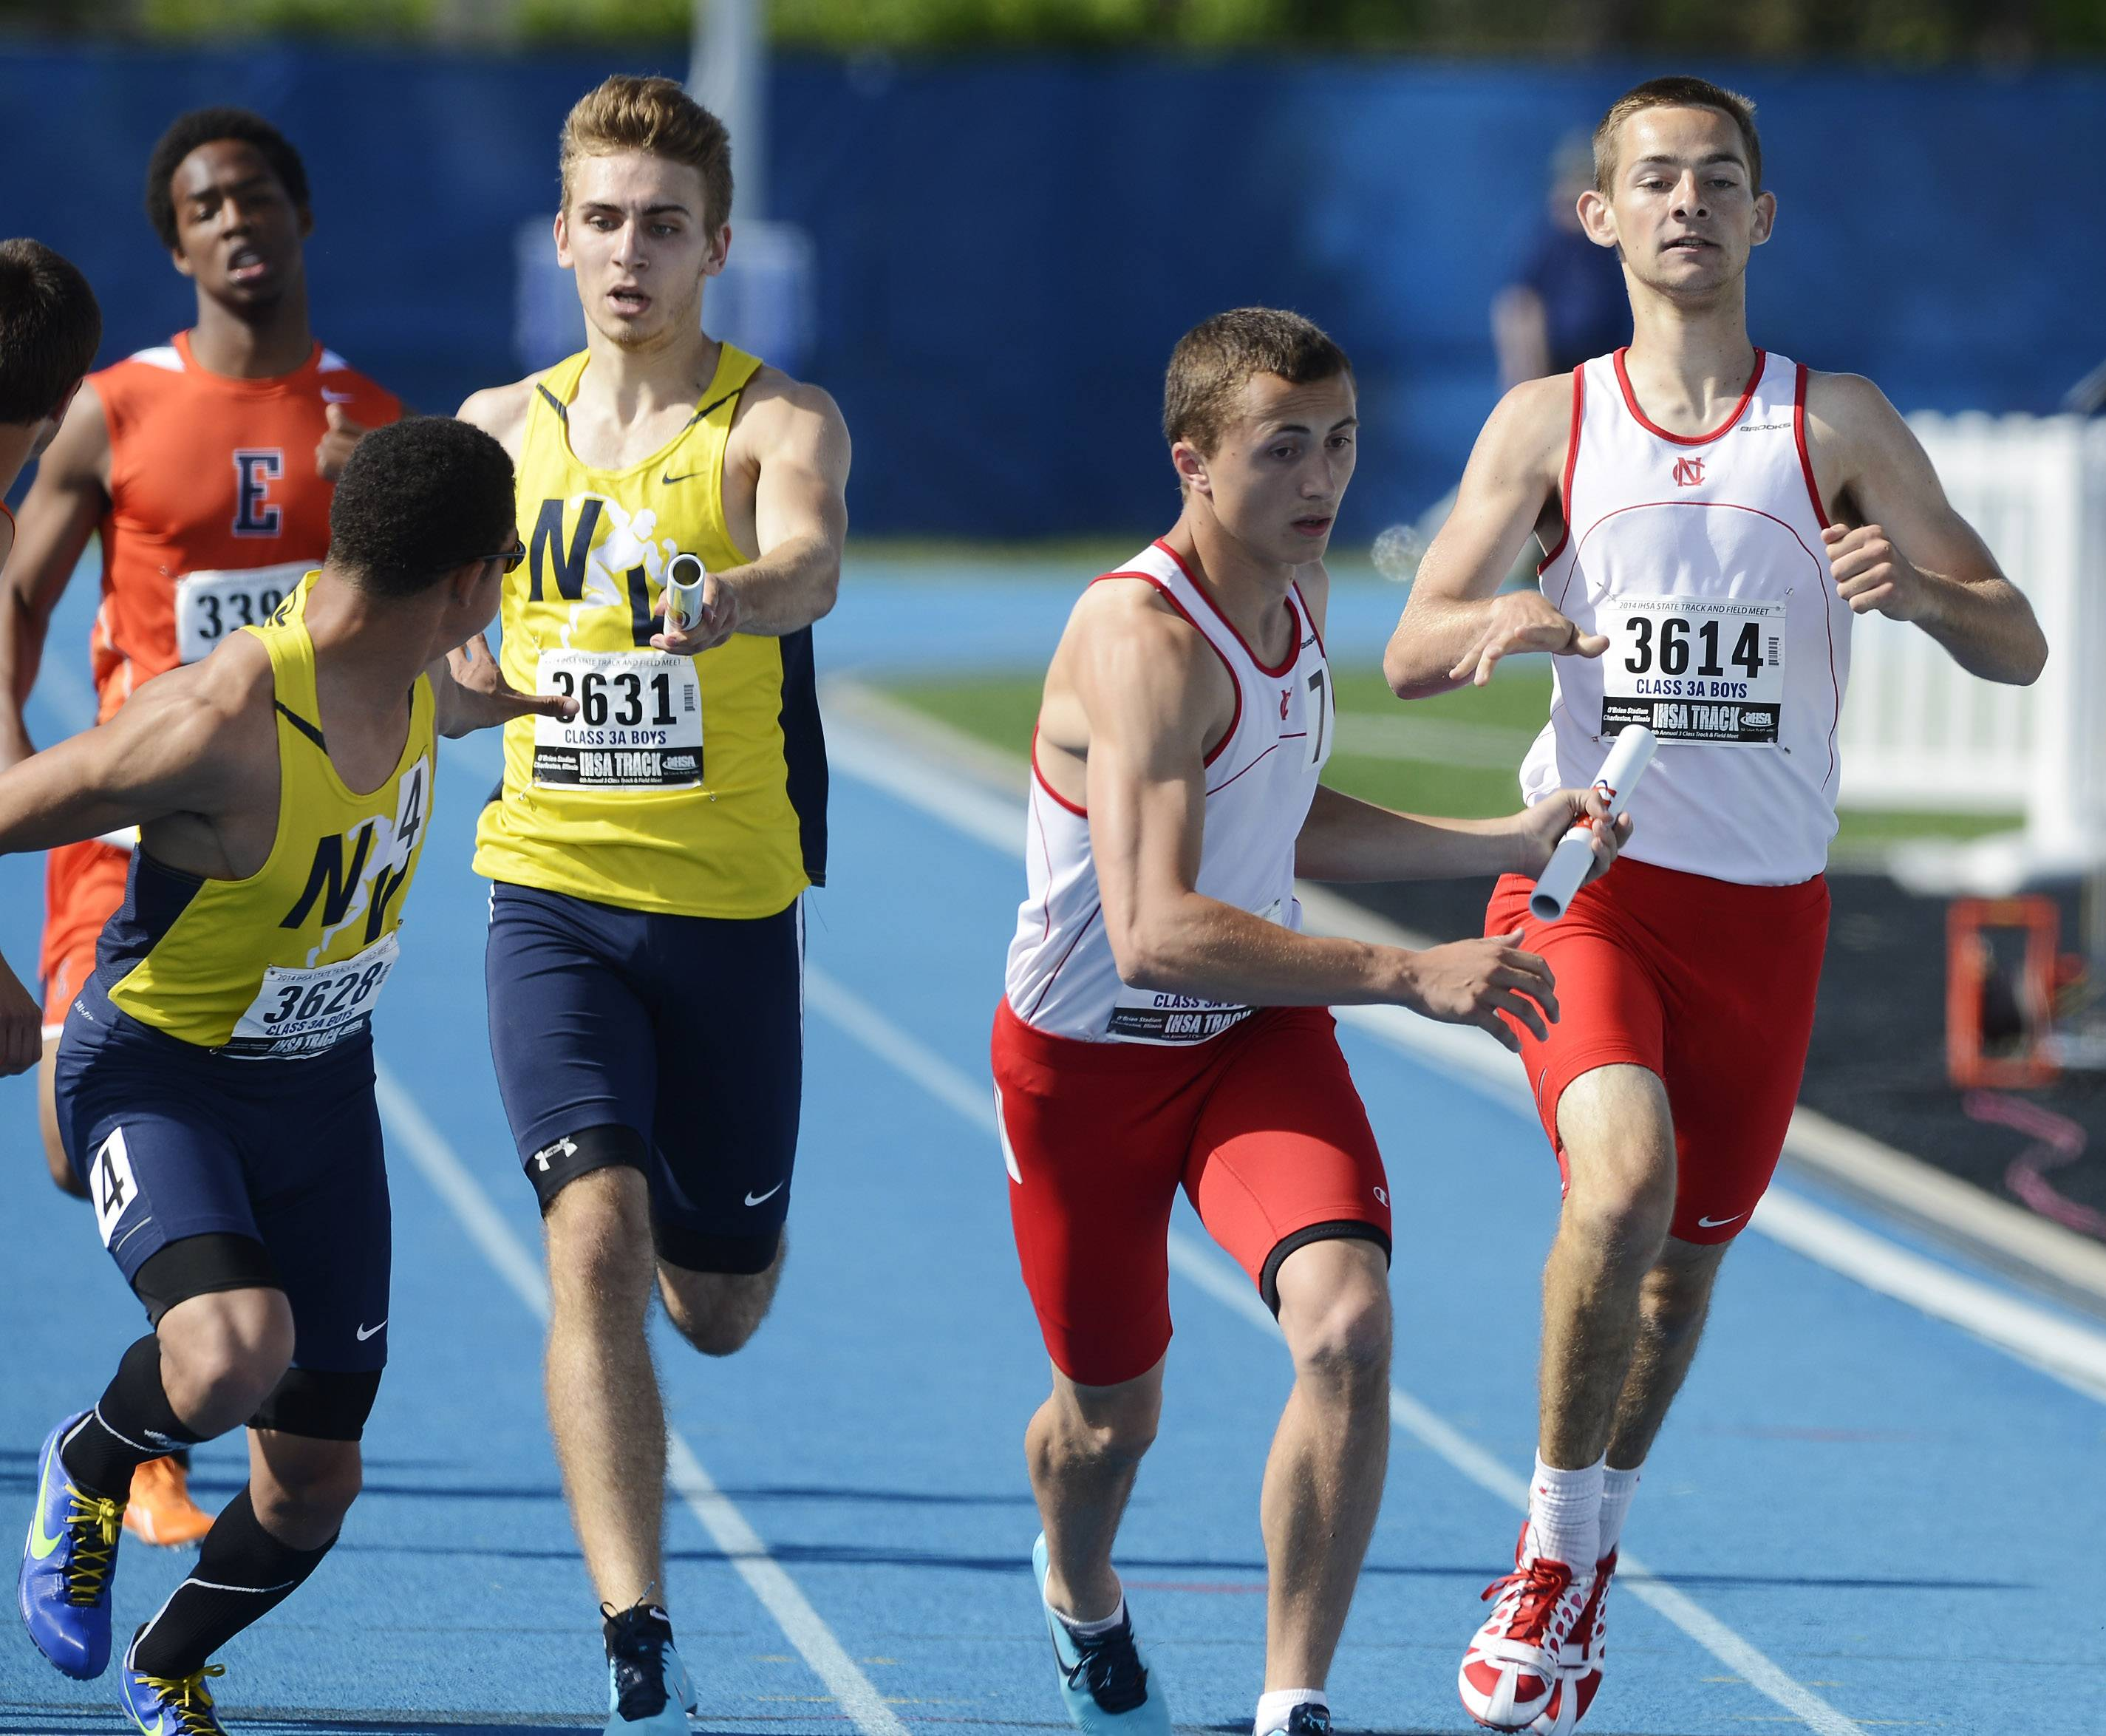 Neuqua Valley's Ty Moss, left, takes the baton from teammate Nick Rafacz, while Naperville Central's Sam Bransby takes the baton from Michael Jopes in the 4x400-meter relay during the boys class 3A state track and field finals in Charleston Saturday.